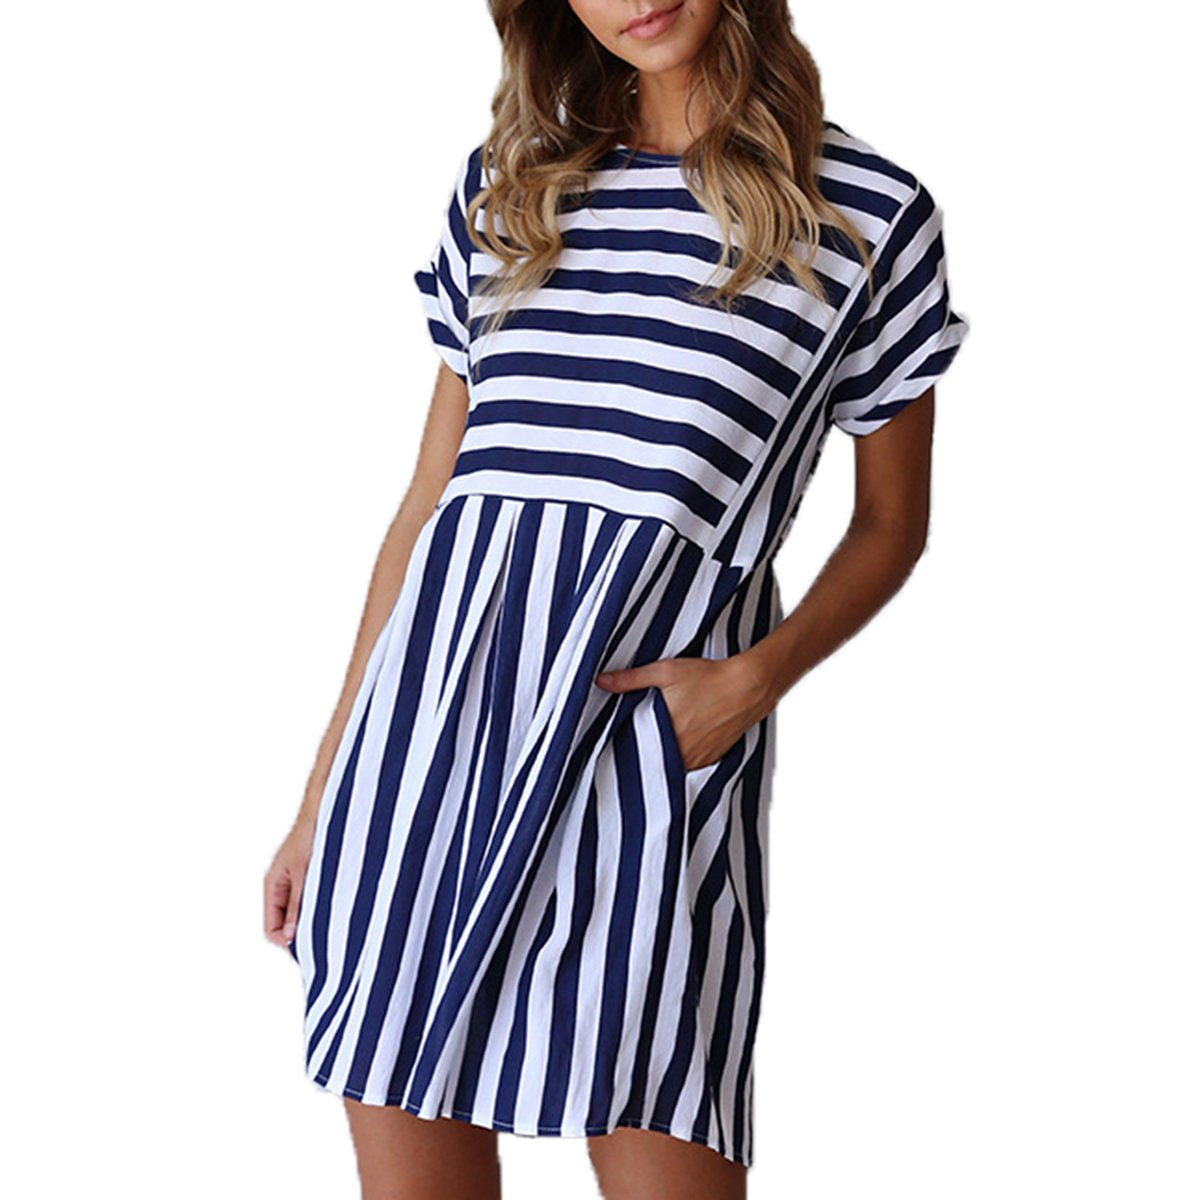 c93b44dd03ba5 ChongXiao Cute Dresses for Women Short Casual Cute Short Sleeve Mini Summer  Striped Dress at Amazon Women's Clothing store: